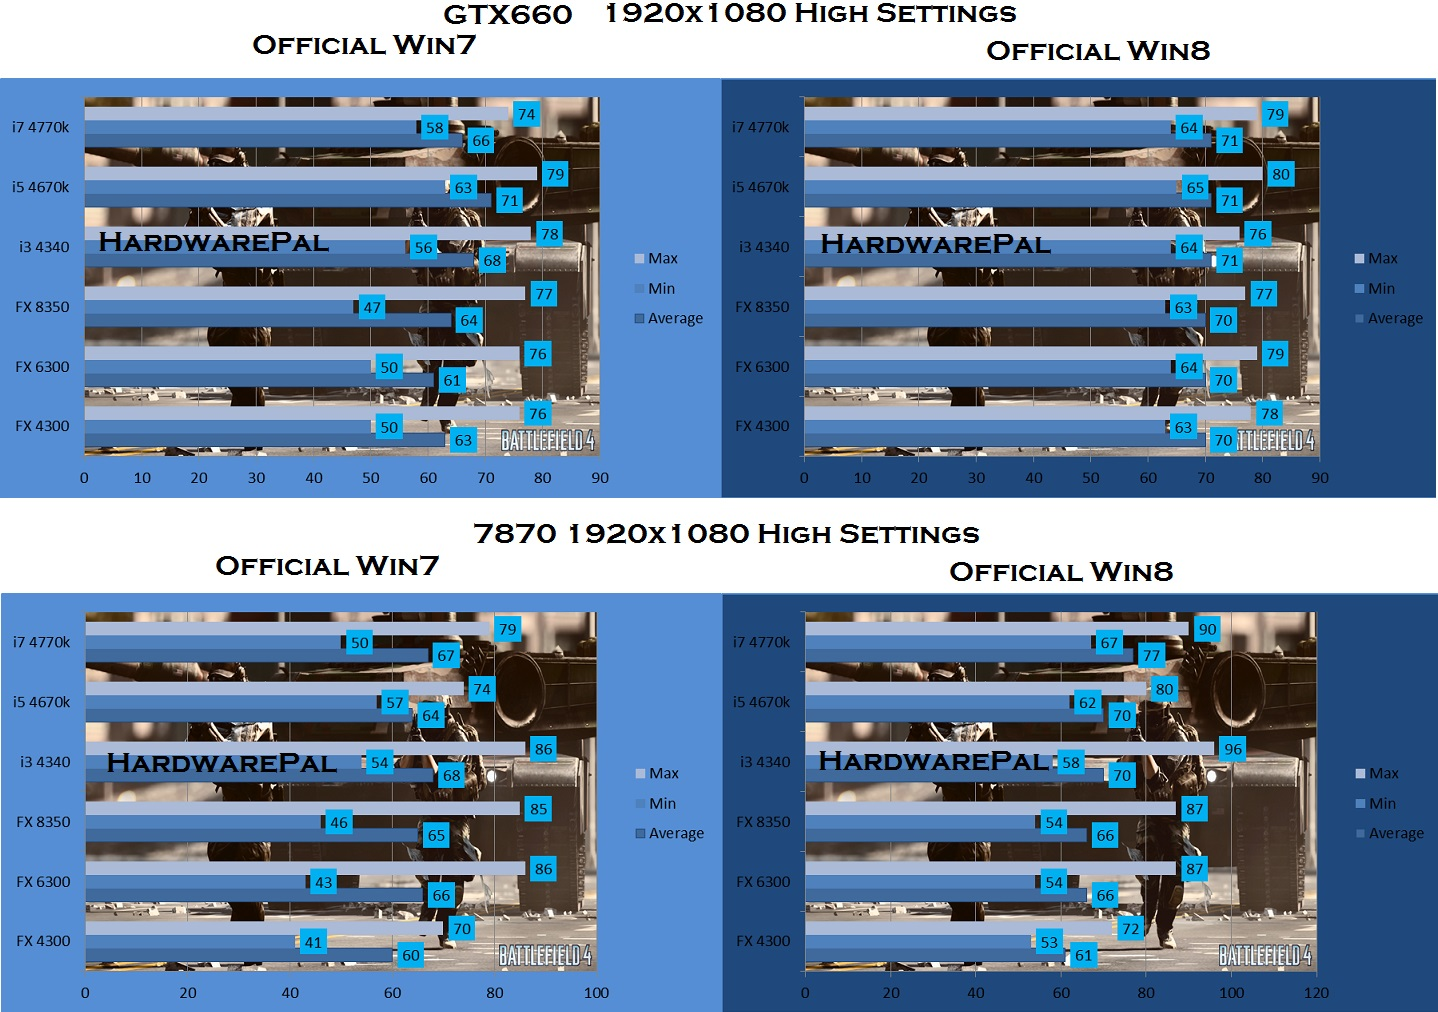 Battlefield 4 1920 x 1080, High Settings, GTX 660 vs 7870